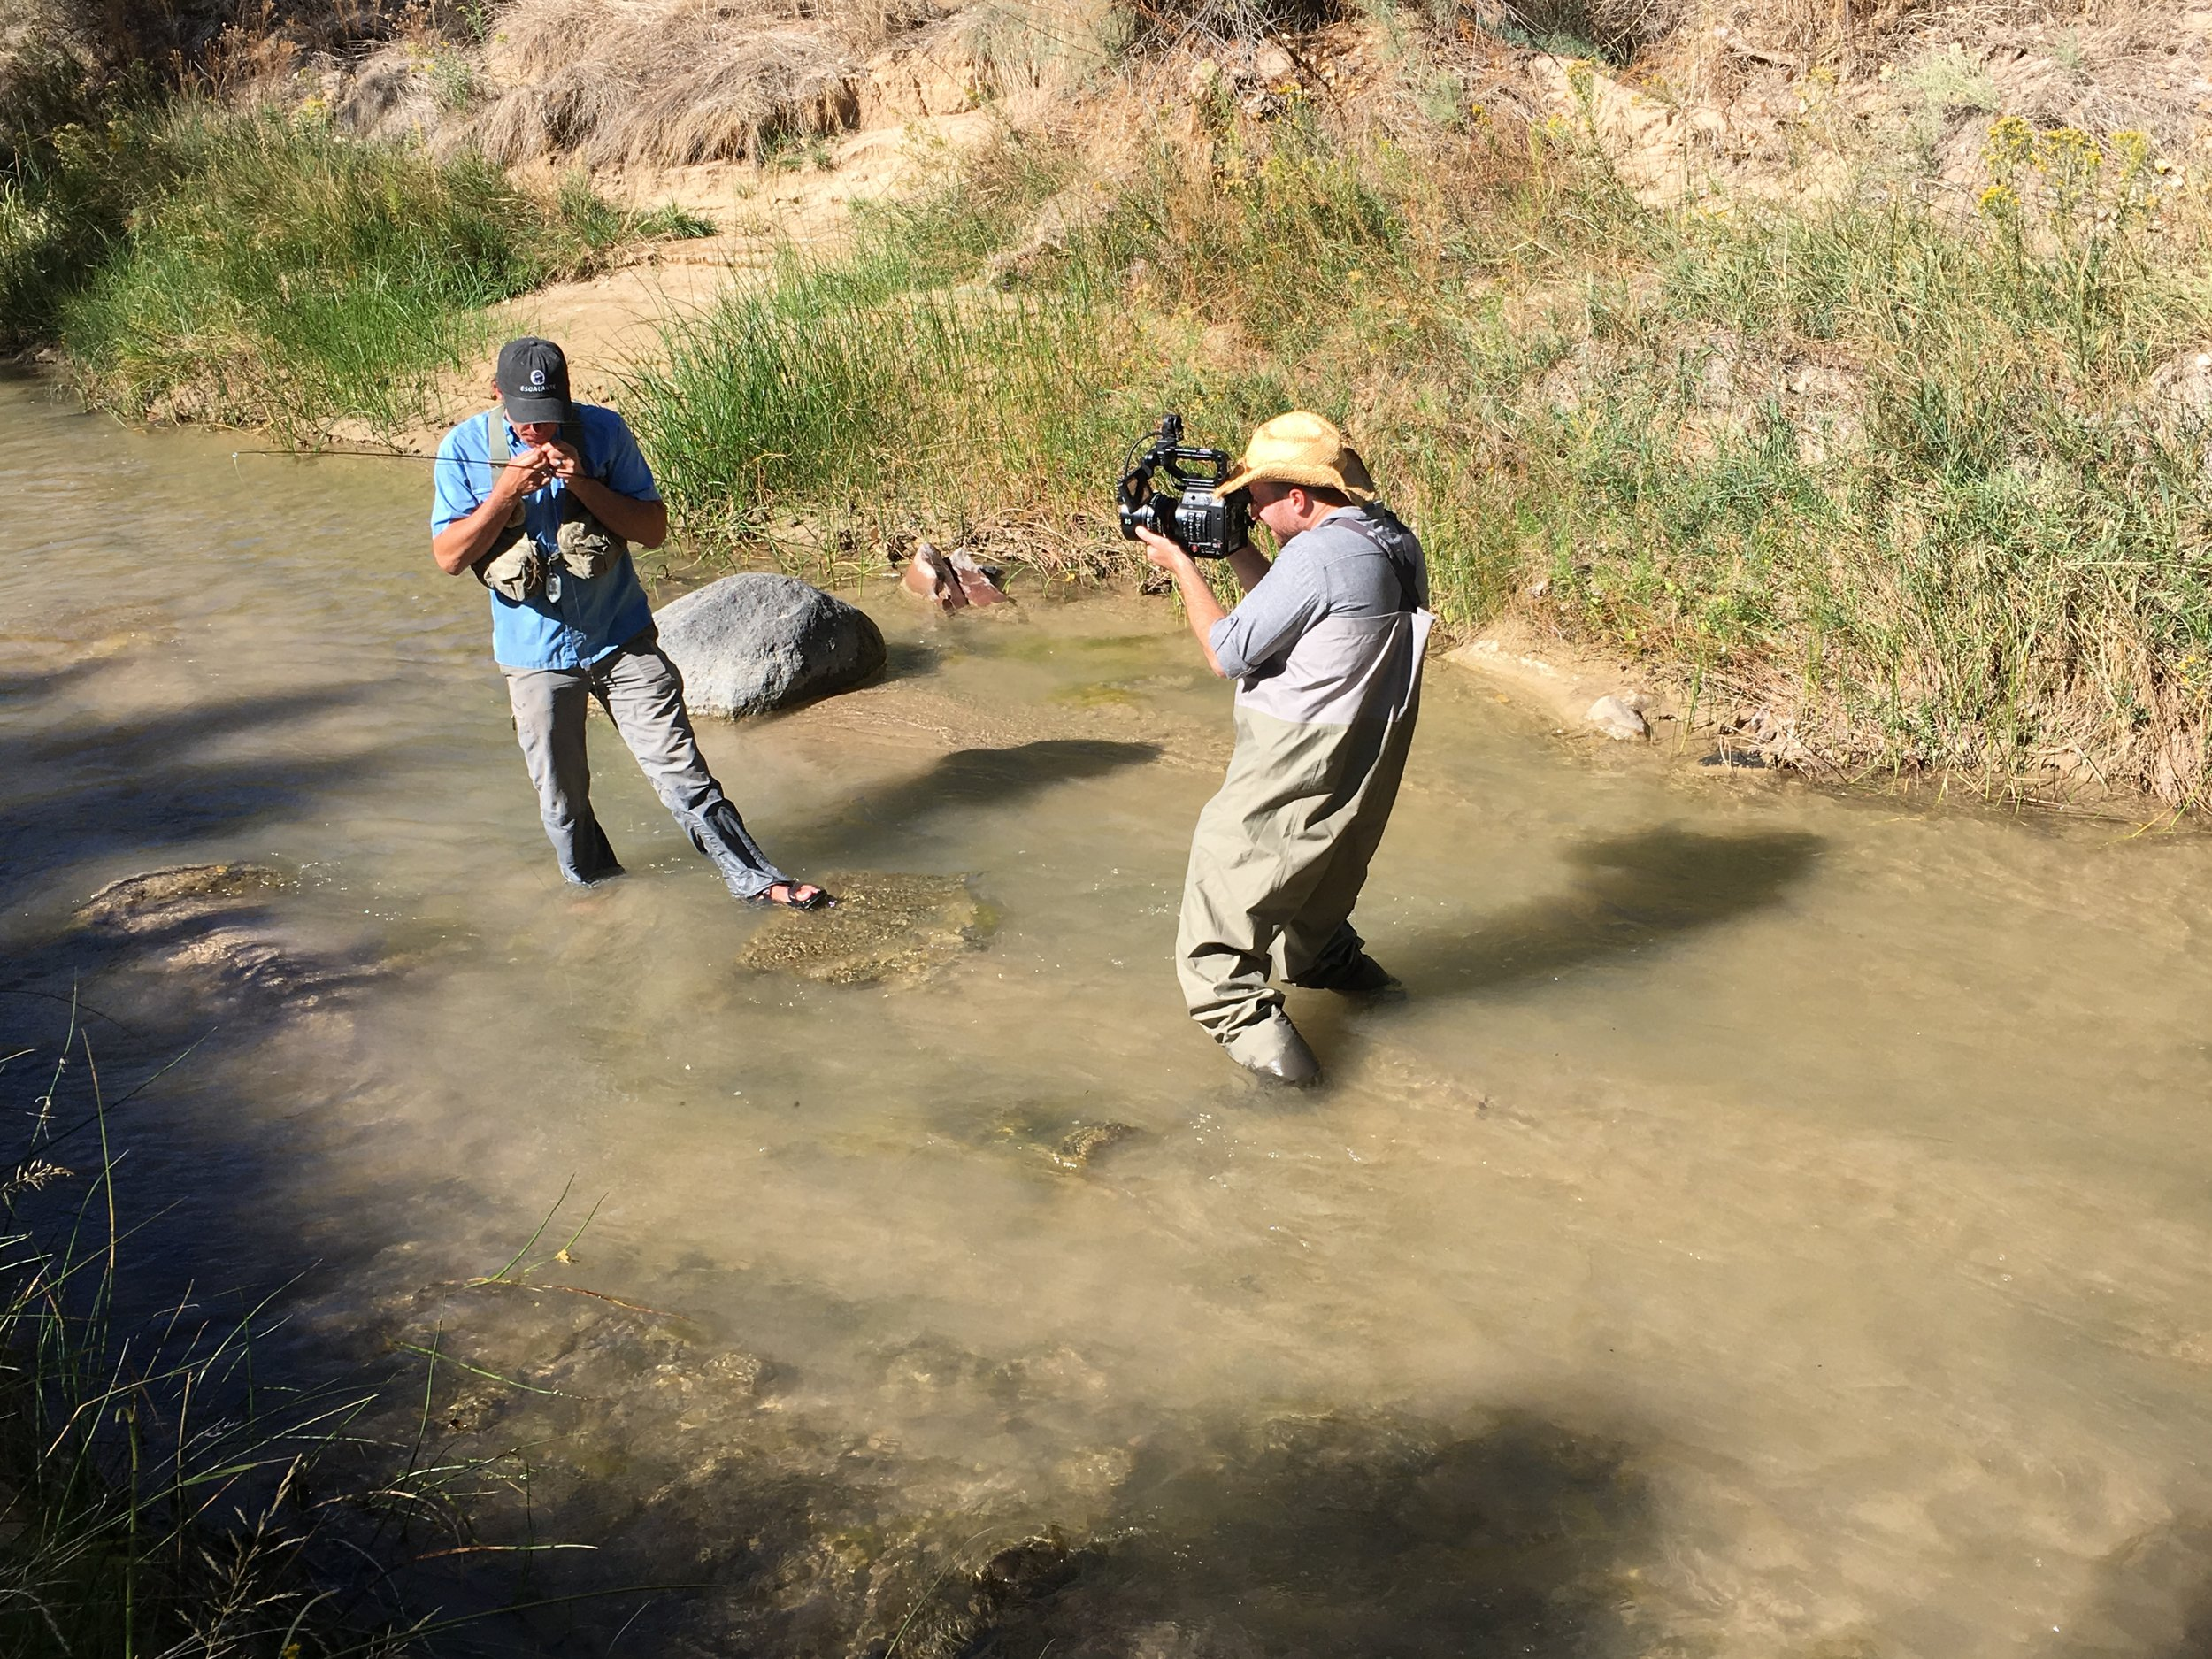 Knee deep in the Escalante river, DP Mark Barry gets the shot wearing a borrowed directors hat and waders to protect from the elements.